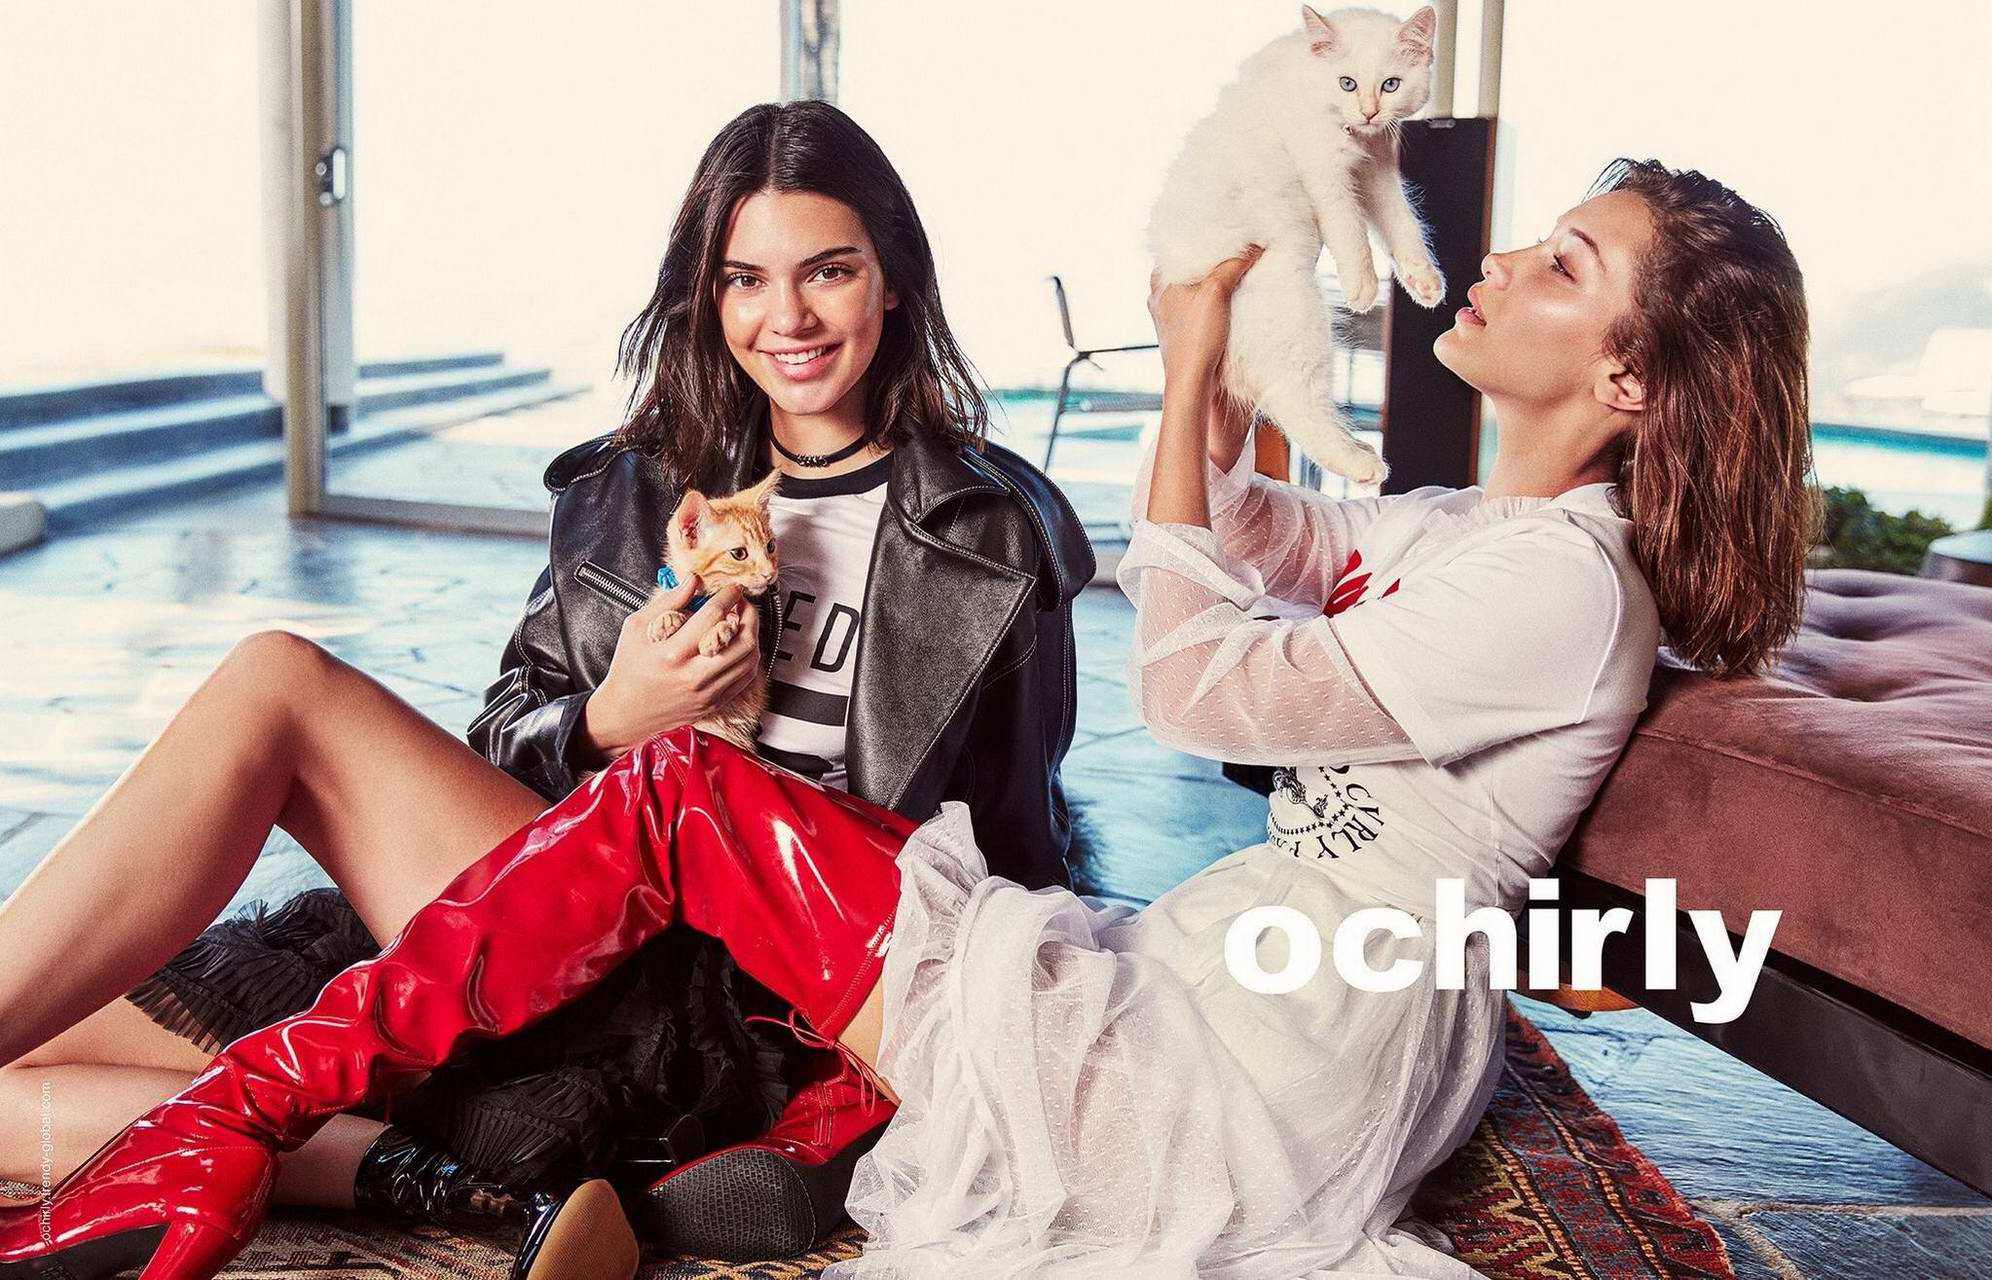 Bella Hadid and Kendall Jenner in Ochirly Campaign 2017